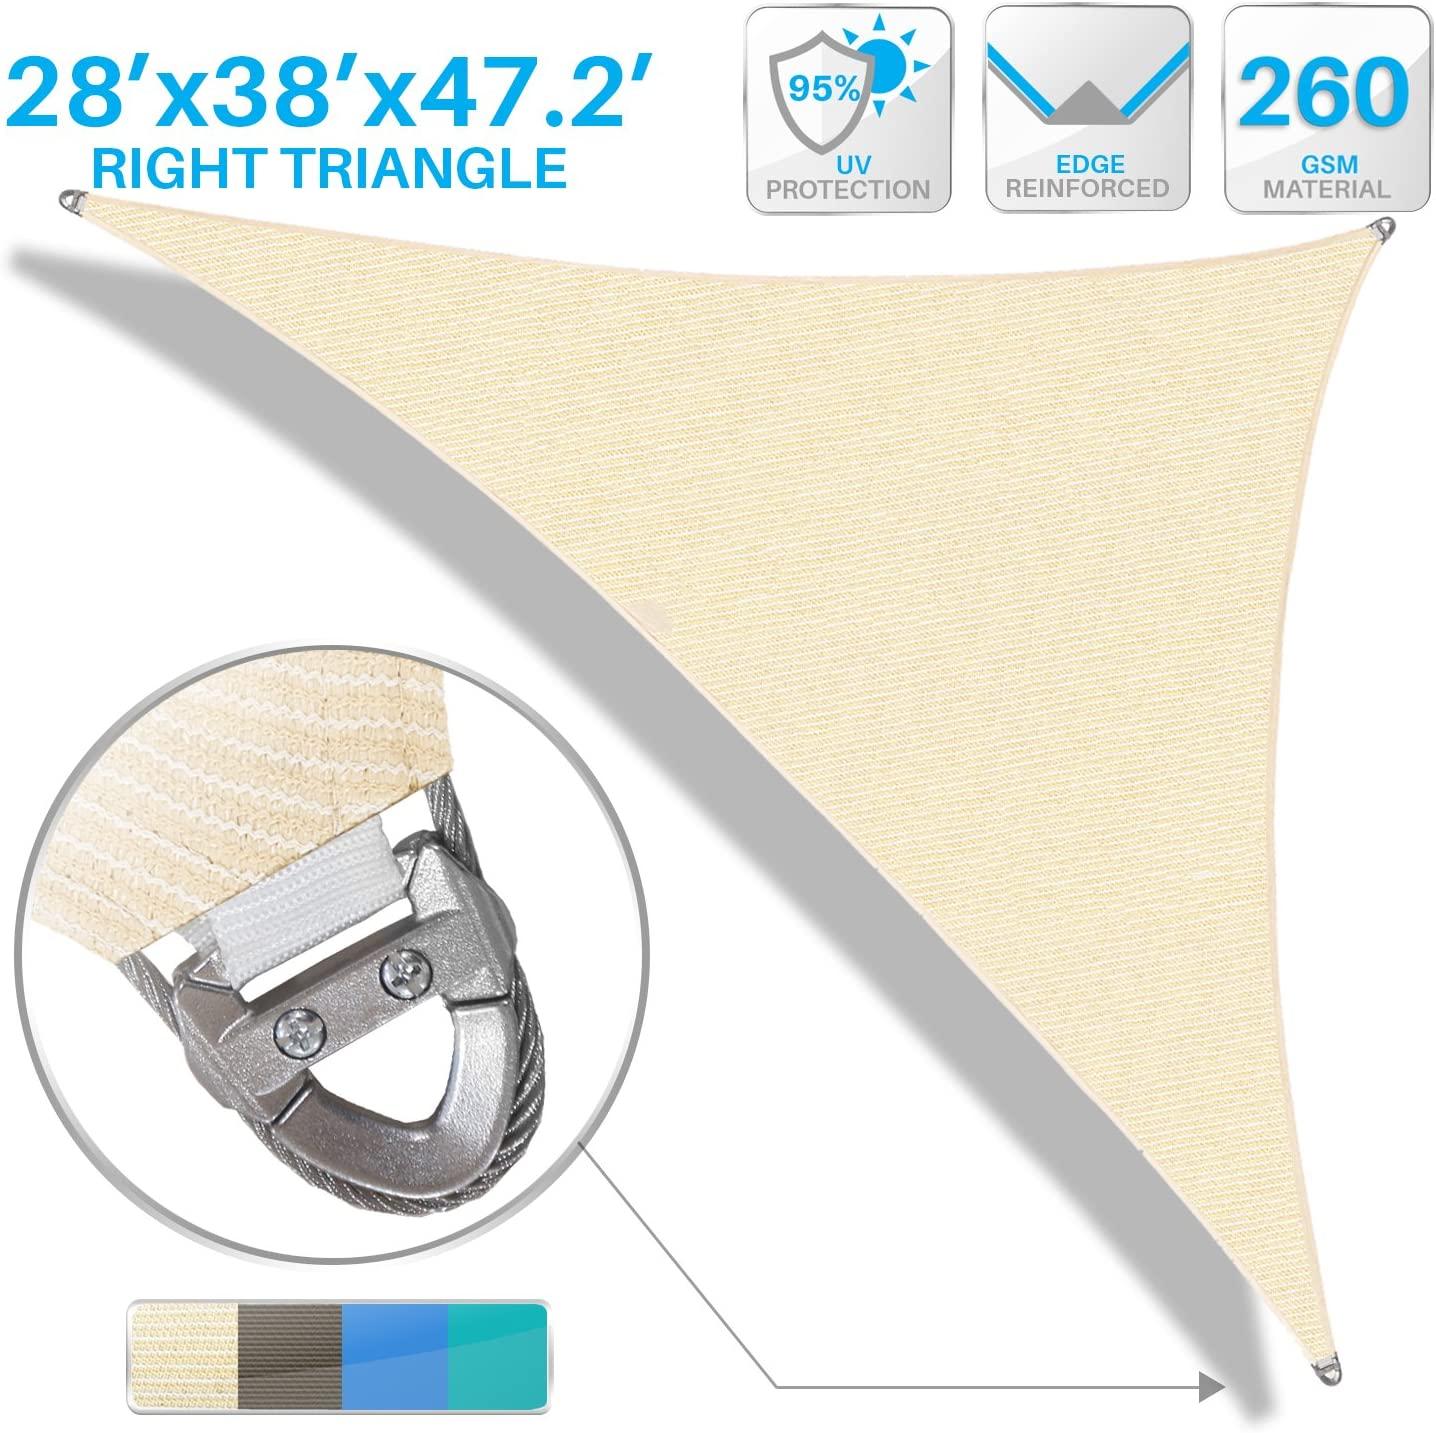 B079HJCH4R Patio Large Sun Shade Sail 28' x 38' x 47' Right Triangle Heavy Duty Strengthen Durable Outdoor Canopy UV Block Fabric A-Ring Design Metal Spring Reinforcement 7 Year Warranty -Beige 81ypBA-mvVL.SL1500_